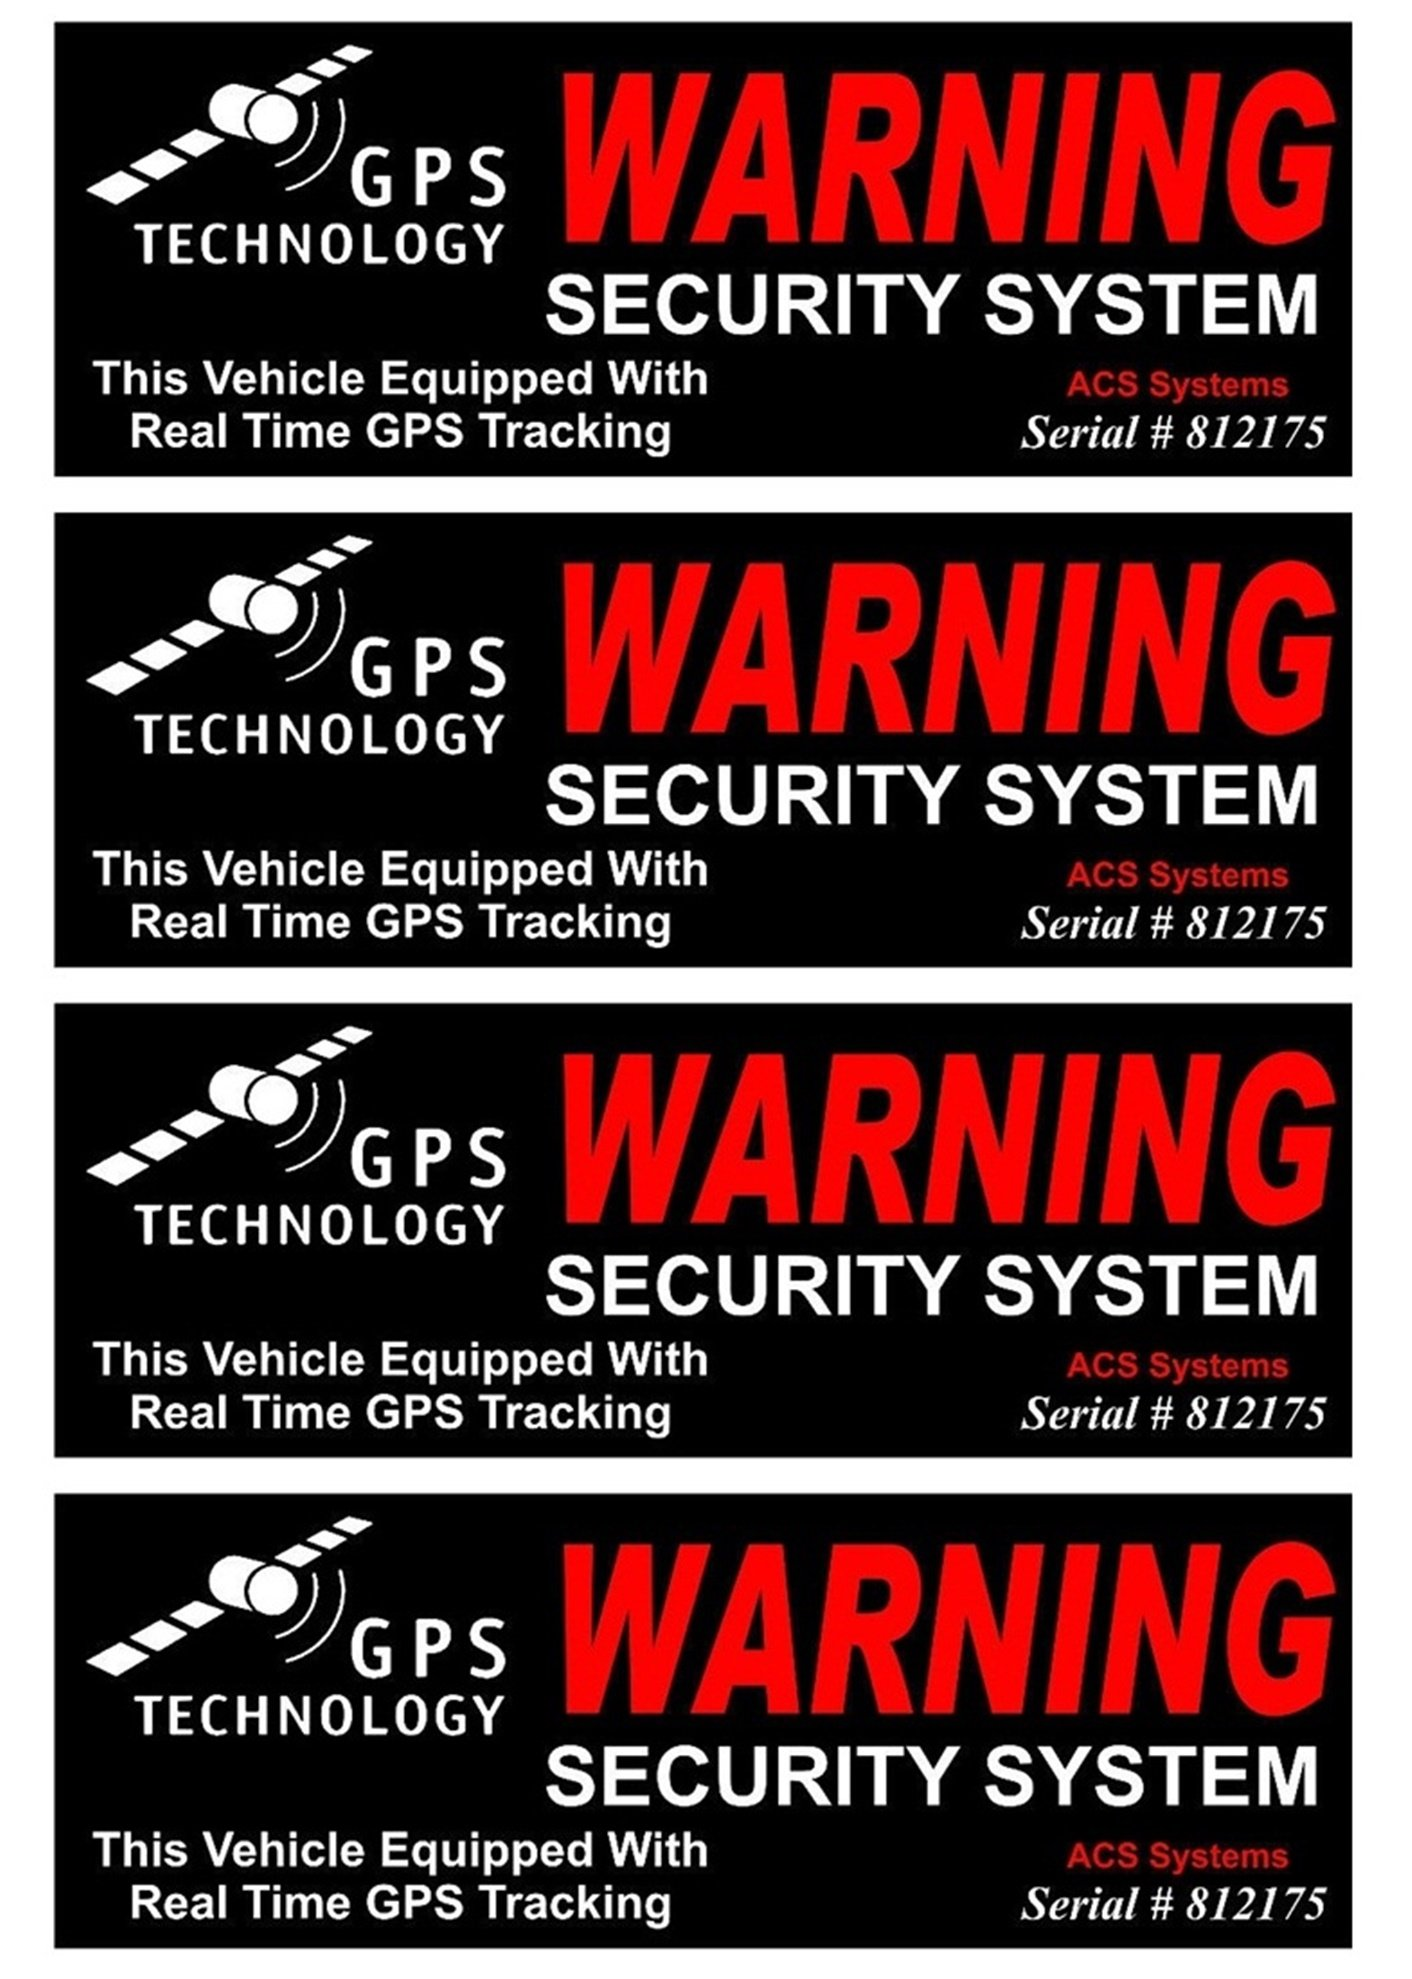 4 Set Rousing Unique Warning GPS Tracking Security System Technology This Vehicle Equipped with Real Time Outside Adhesive Stickers Sign CCTV Surveillance Reflective Video Decals Size 4.5''x1.5''